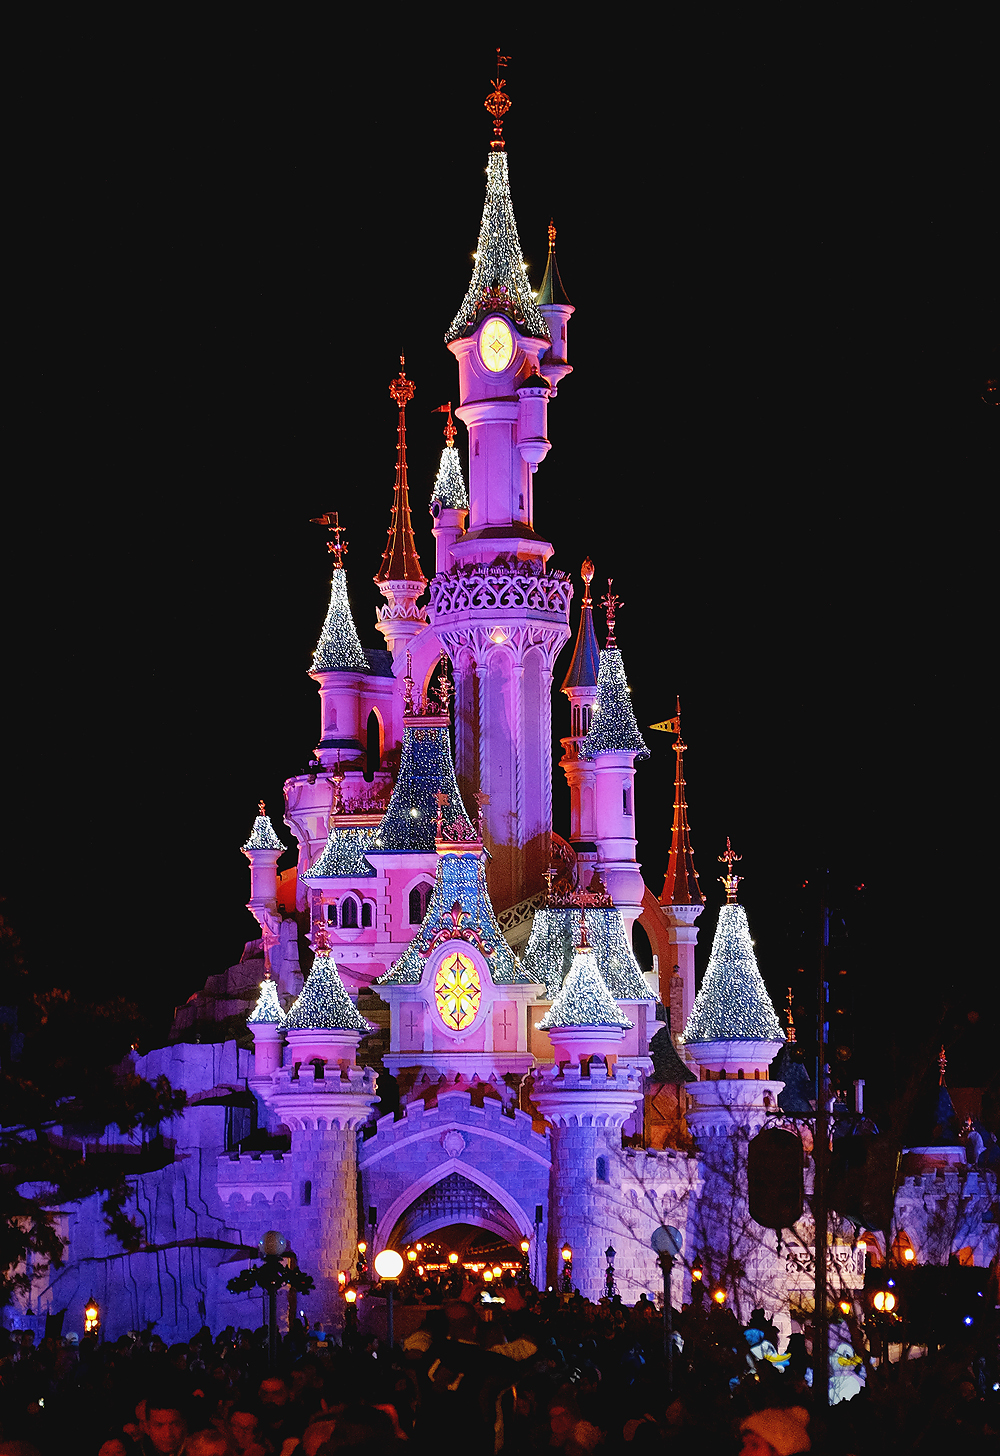 Image of Christmas in Disneyland Paris with the Fuji XT1 and the Fujinon 16-55 2.8 By Willie Kers of GlamourKidz Photography